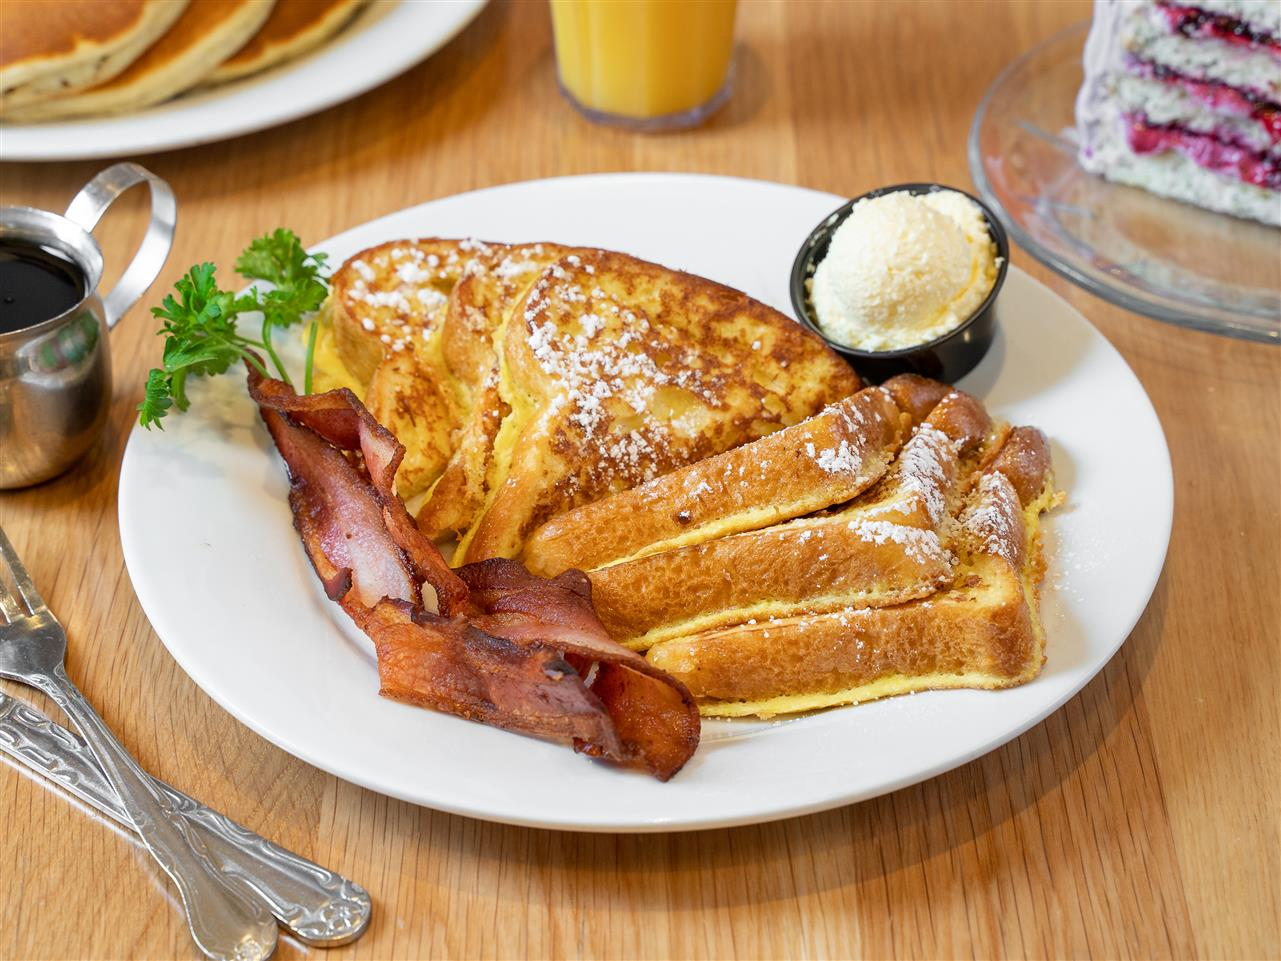 #8 Three Pieces of French Toast and Two Strips of Bacon